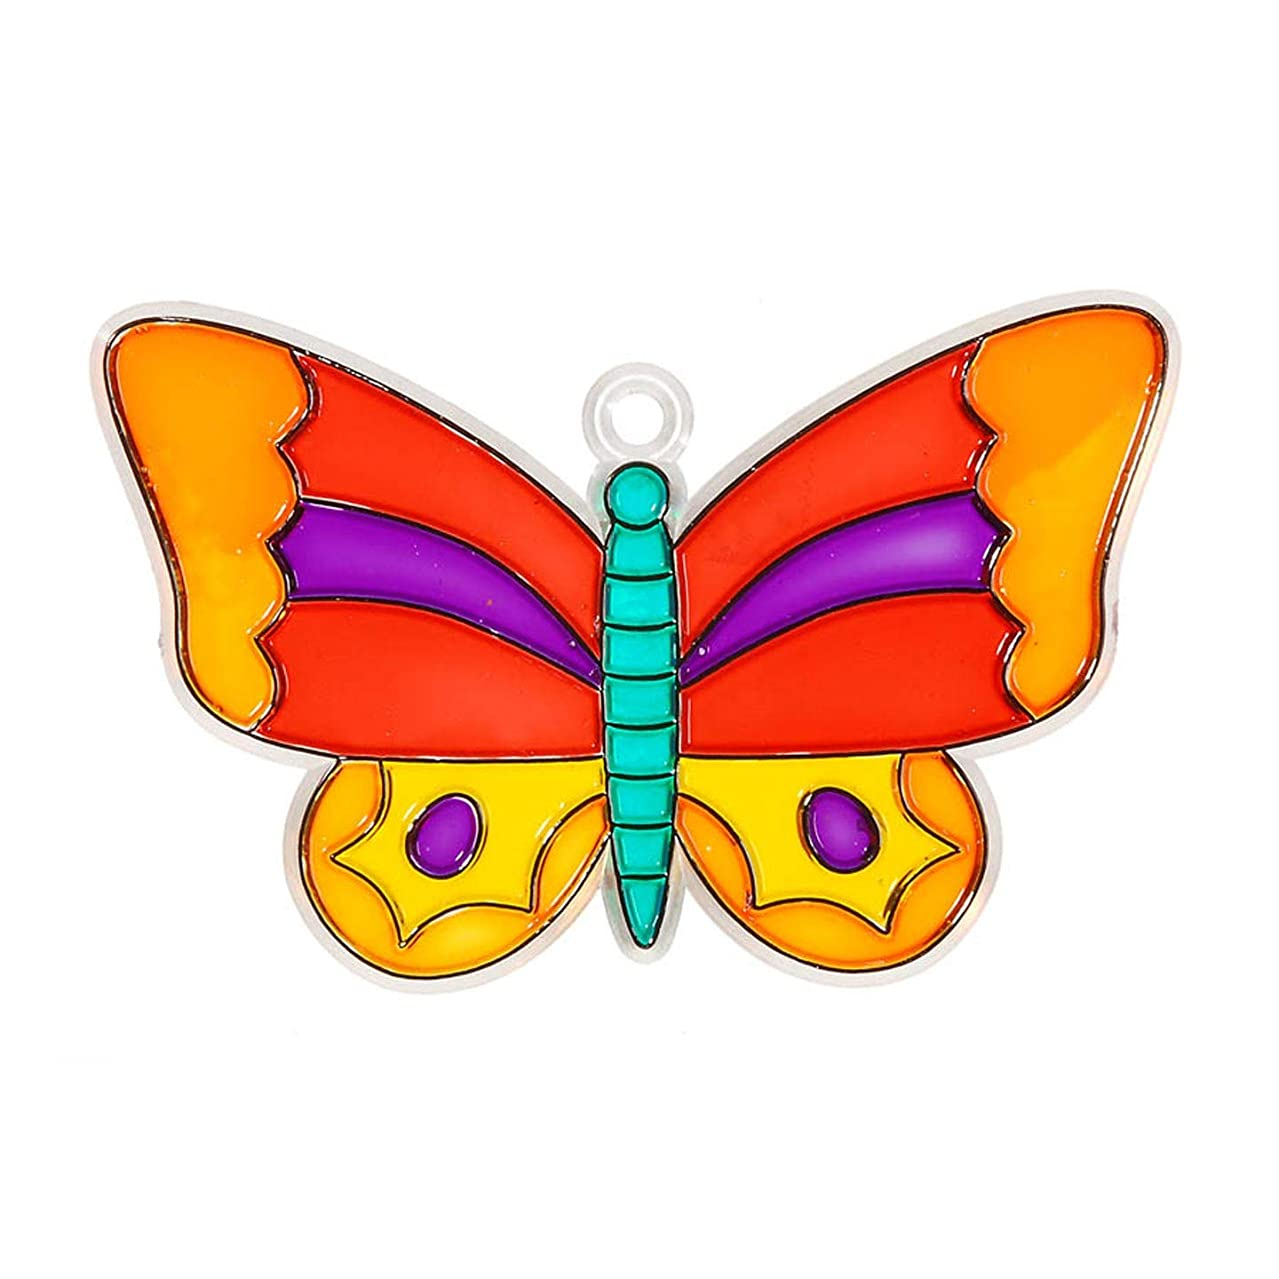 Bulk Buy: Darice Crafts for Kids Suncatcher Butterfly 4 inches (12-Pack) 1024-13